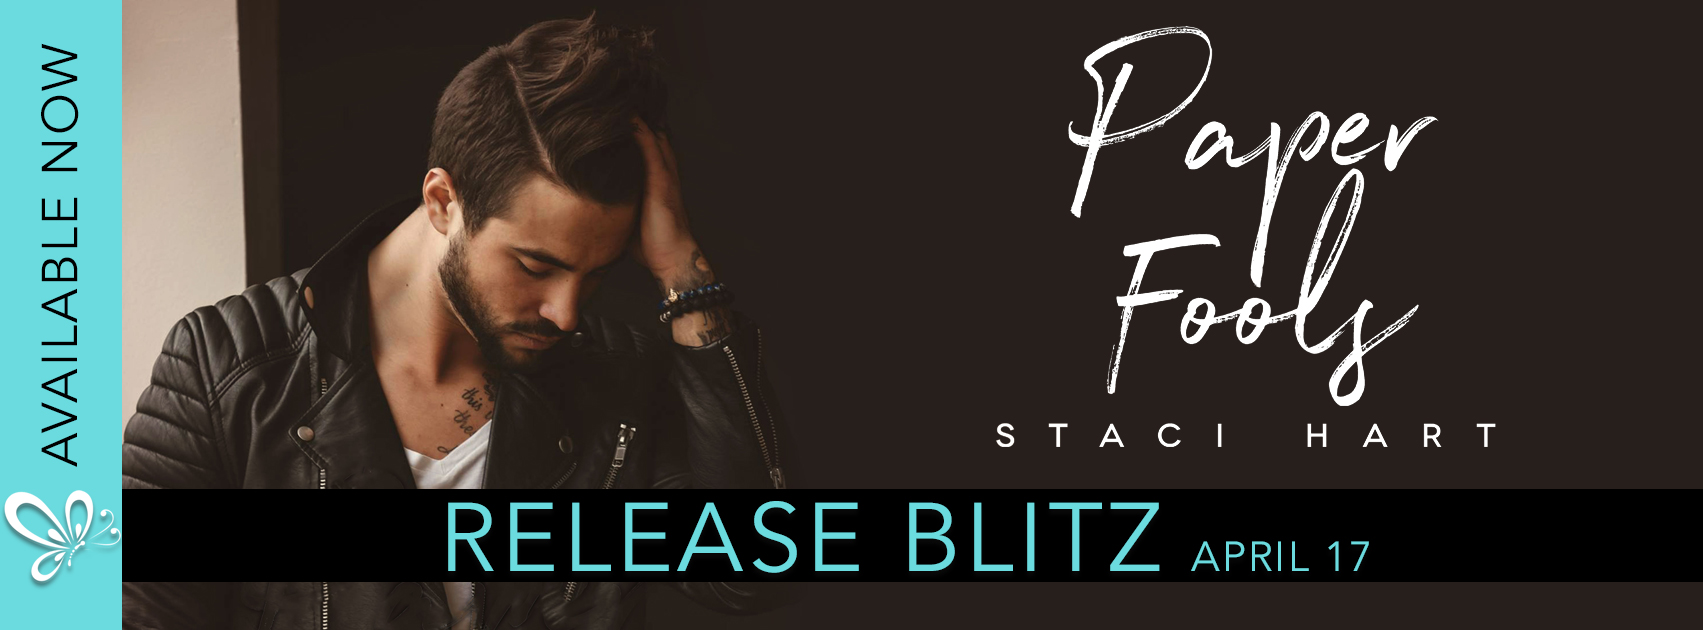 Release Blitz: Paper Fools by Staci Hart